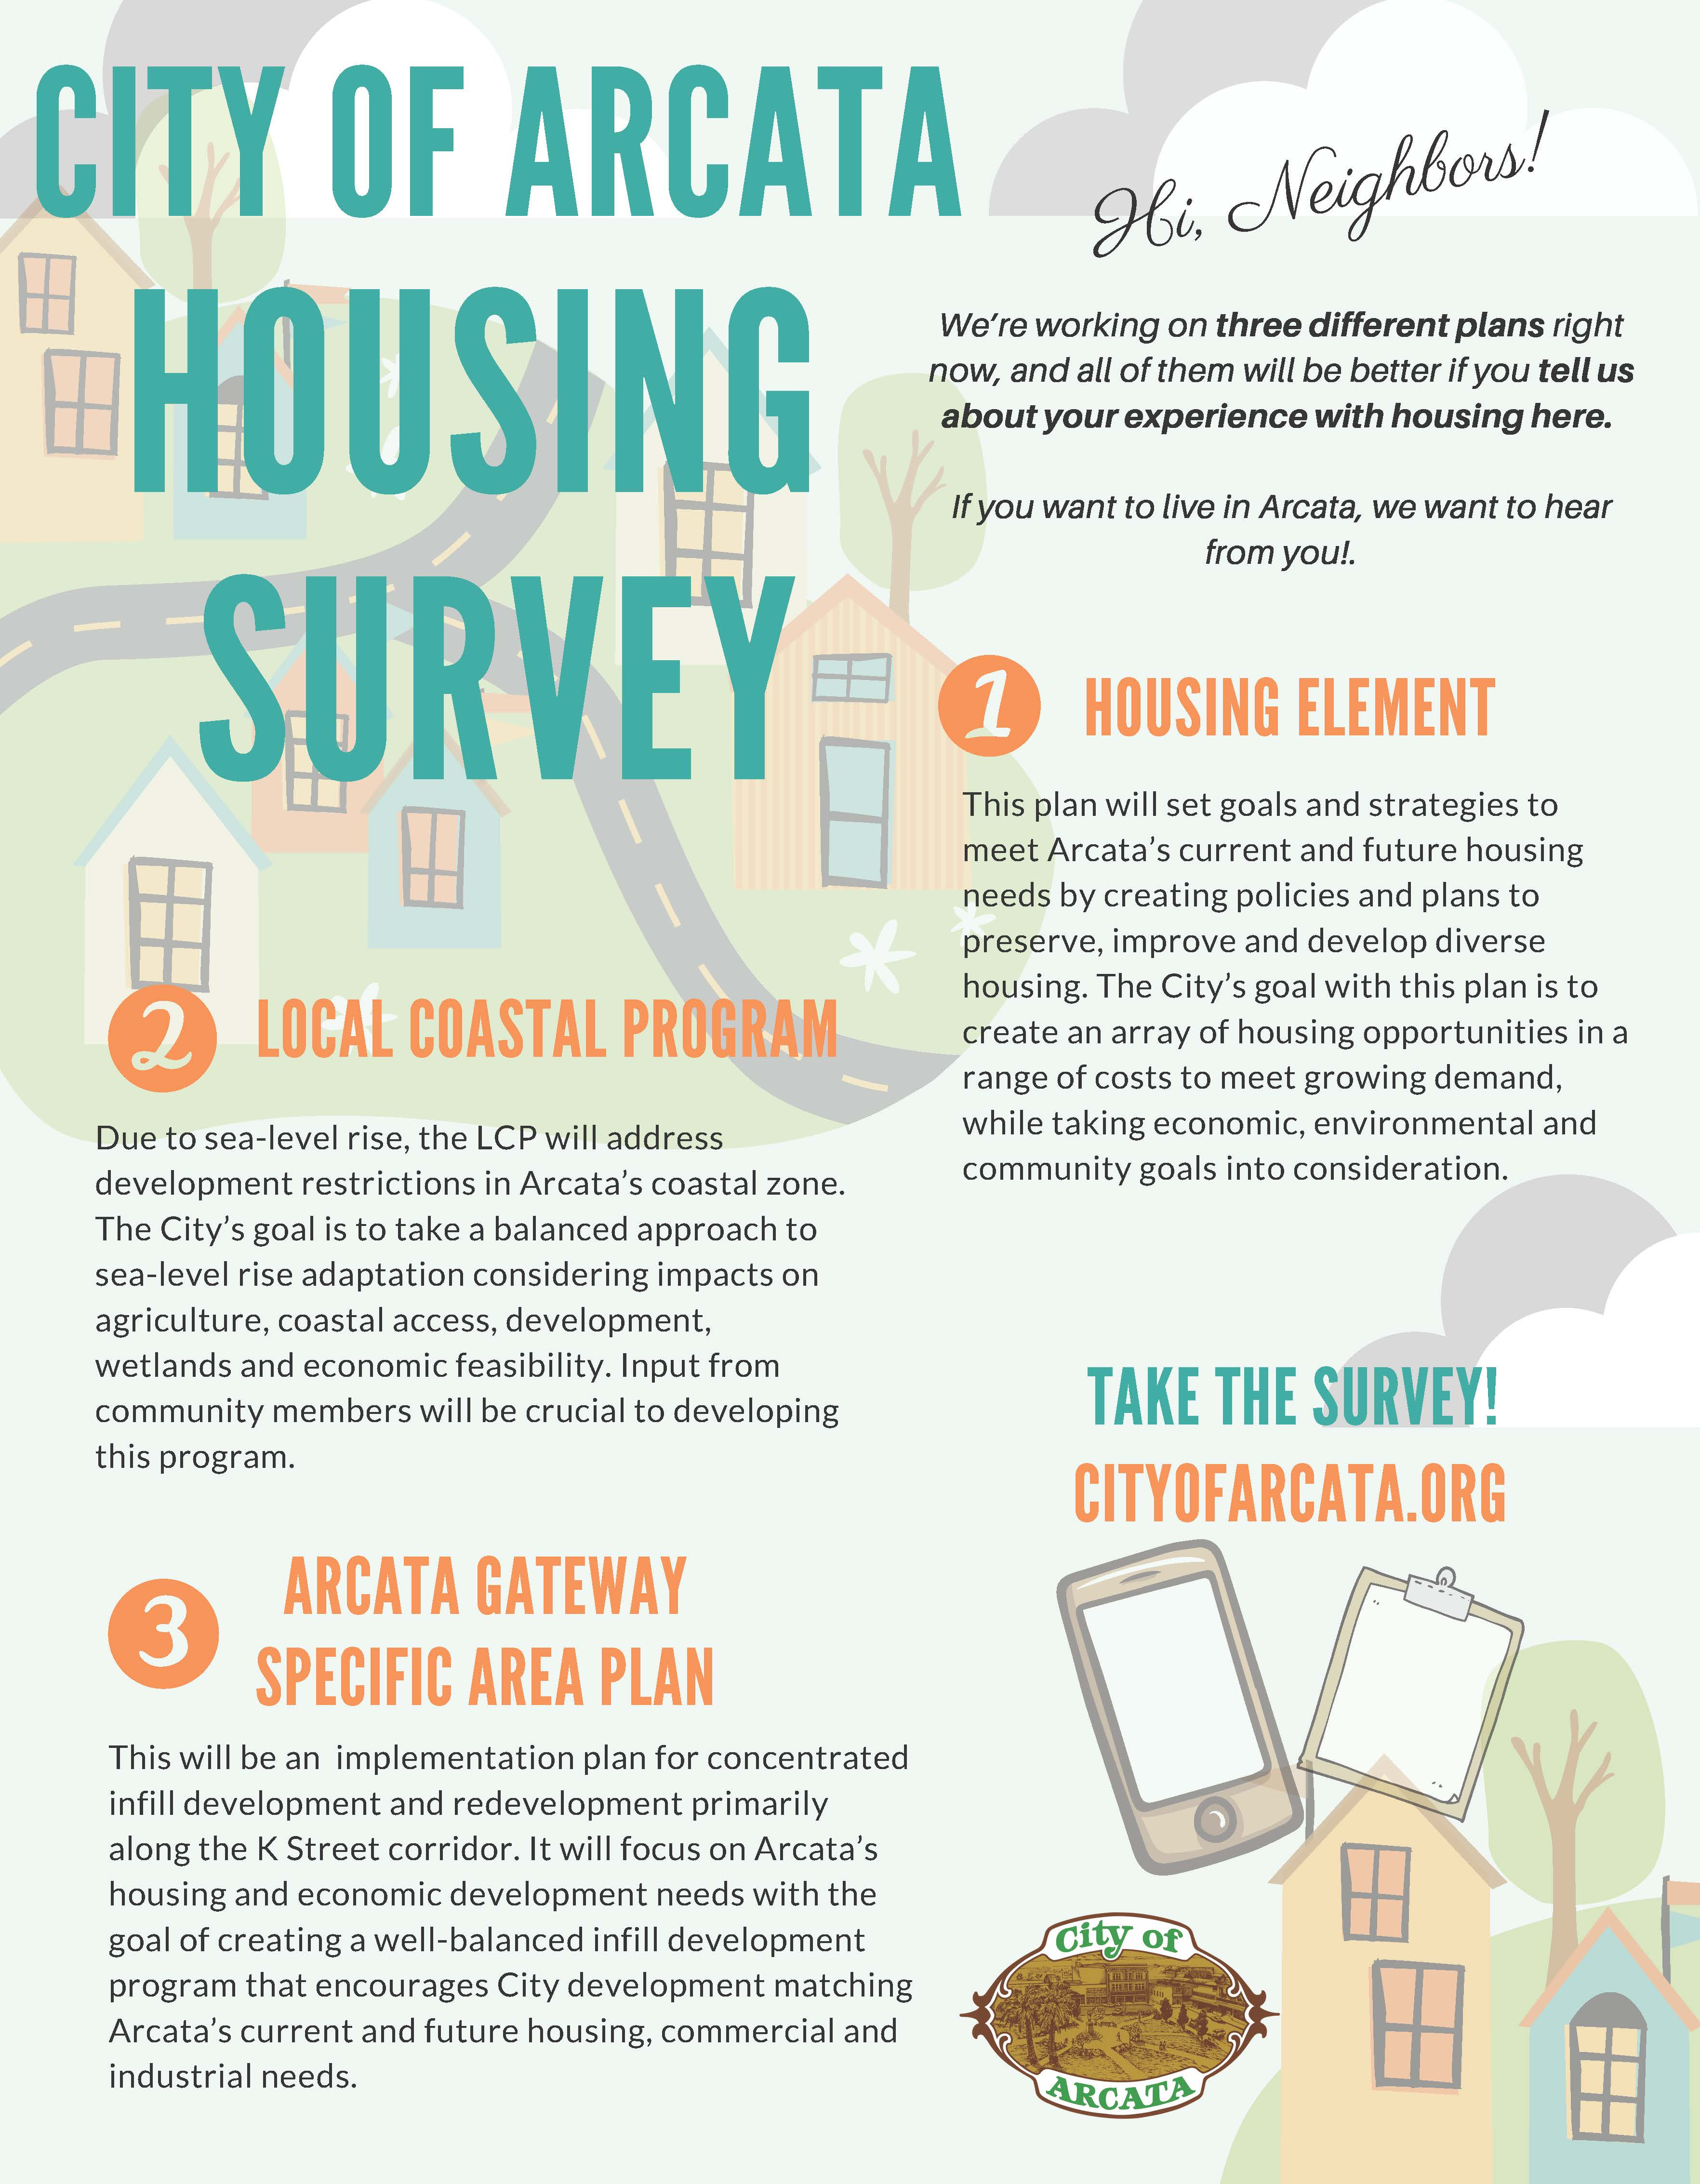 City of Arcata Housing Survey Opens in new window